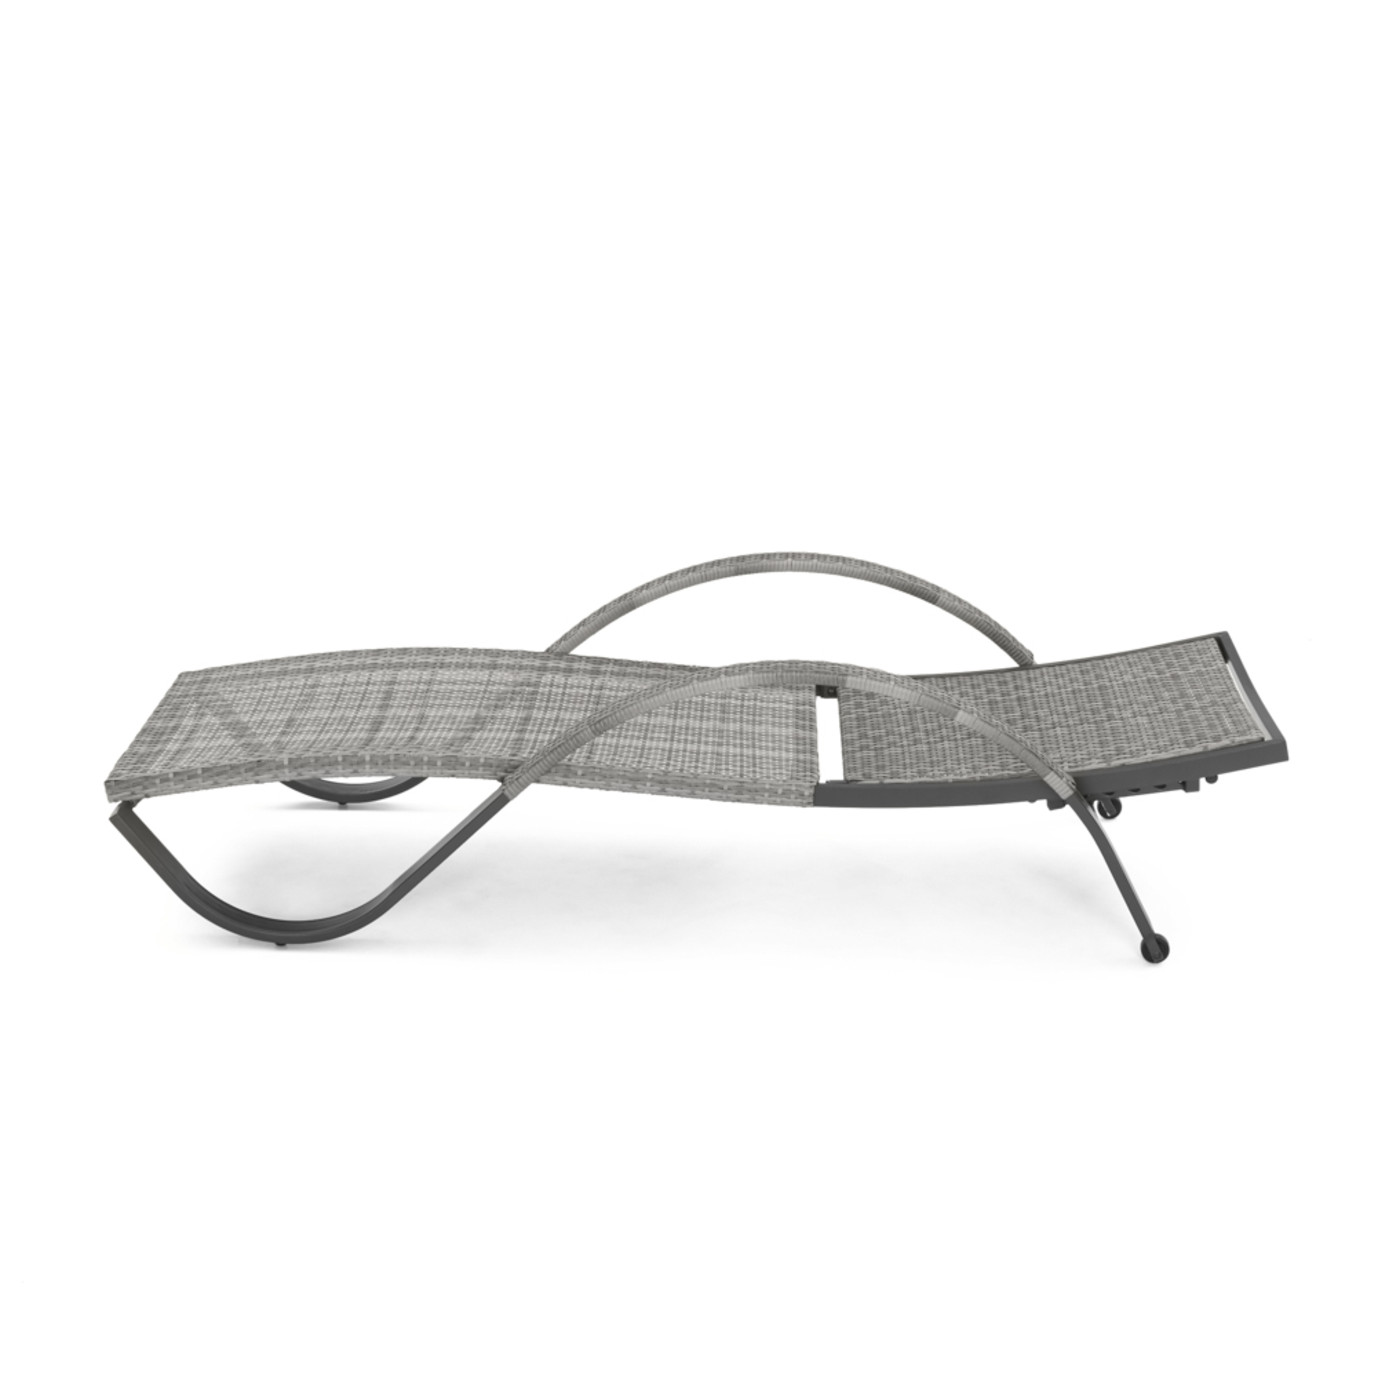 Cannes Chaise Lounges With Cushion And Pillow Ginkgo